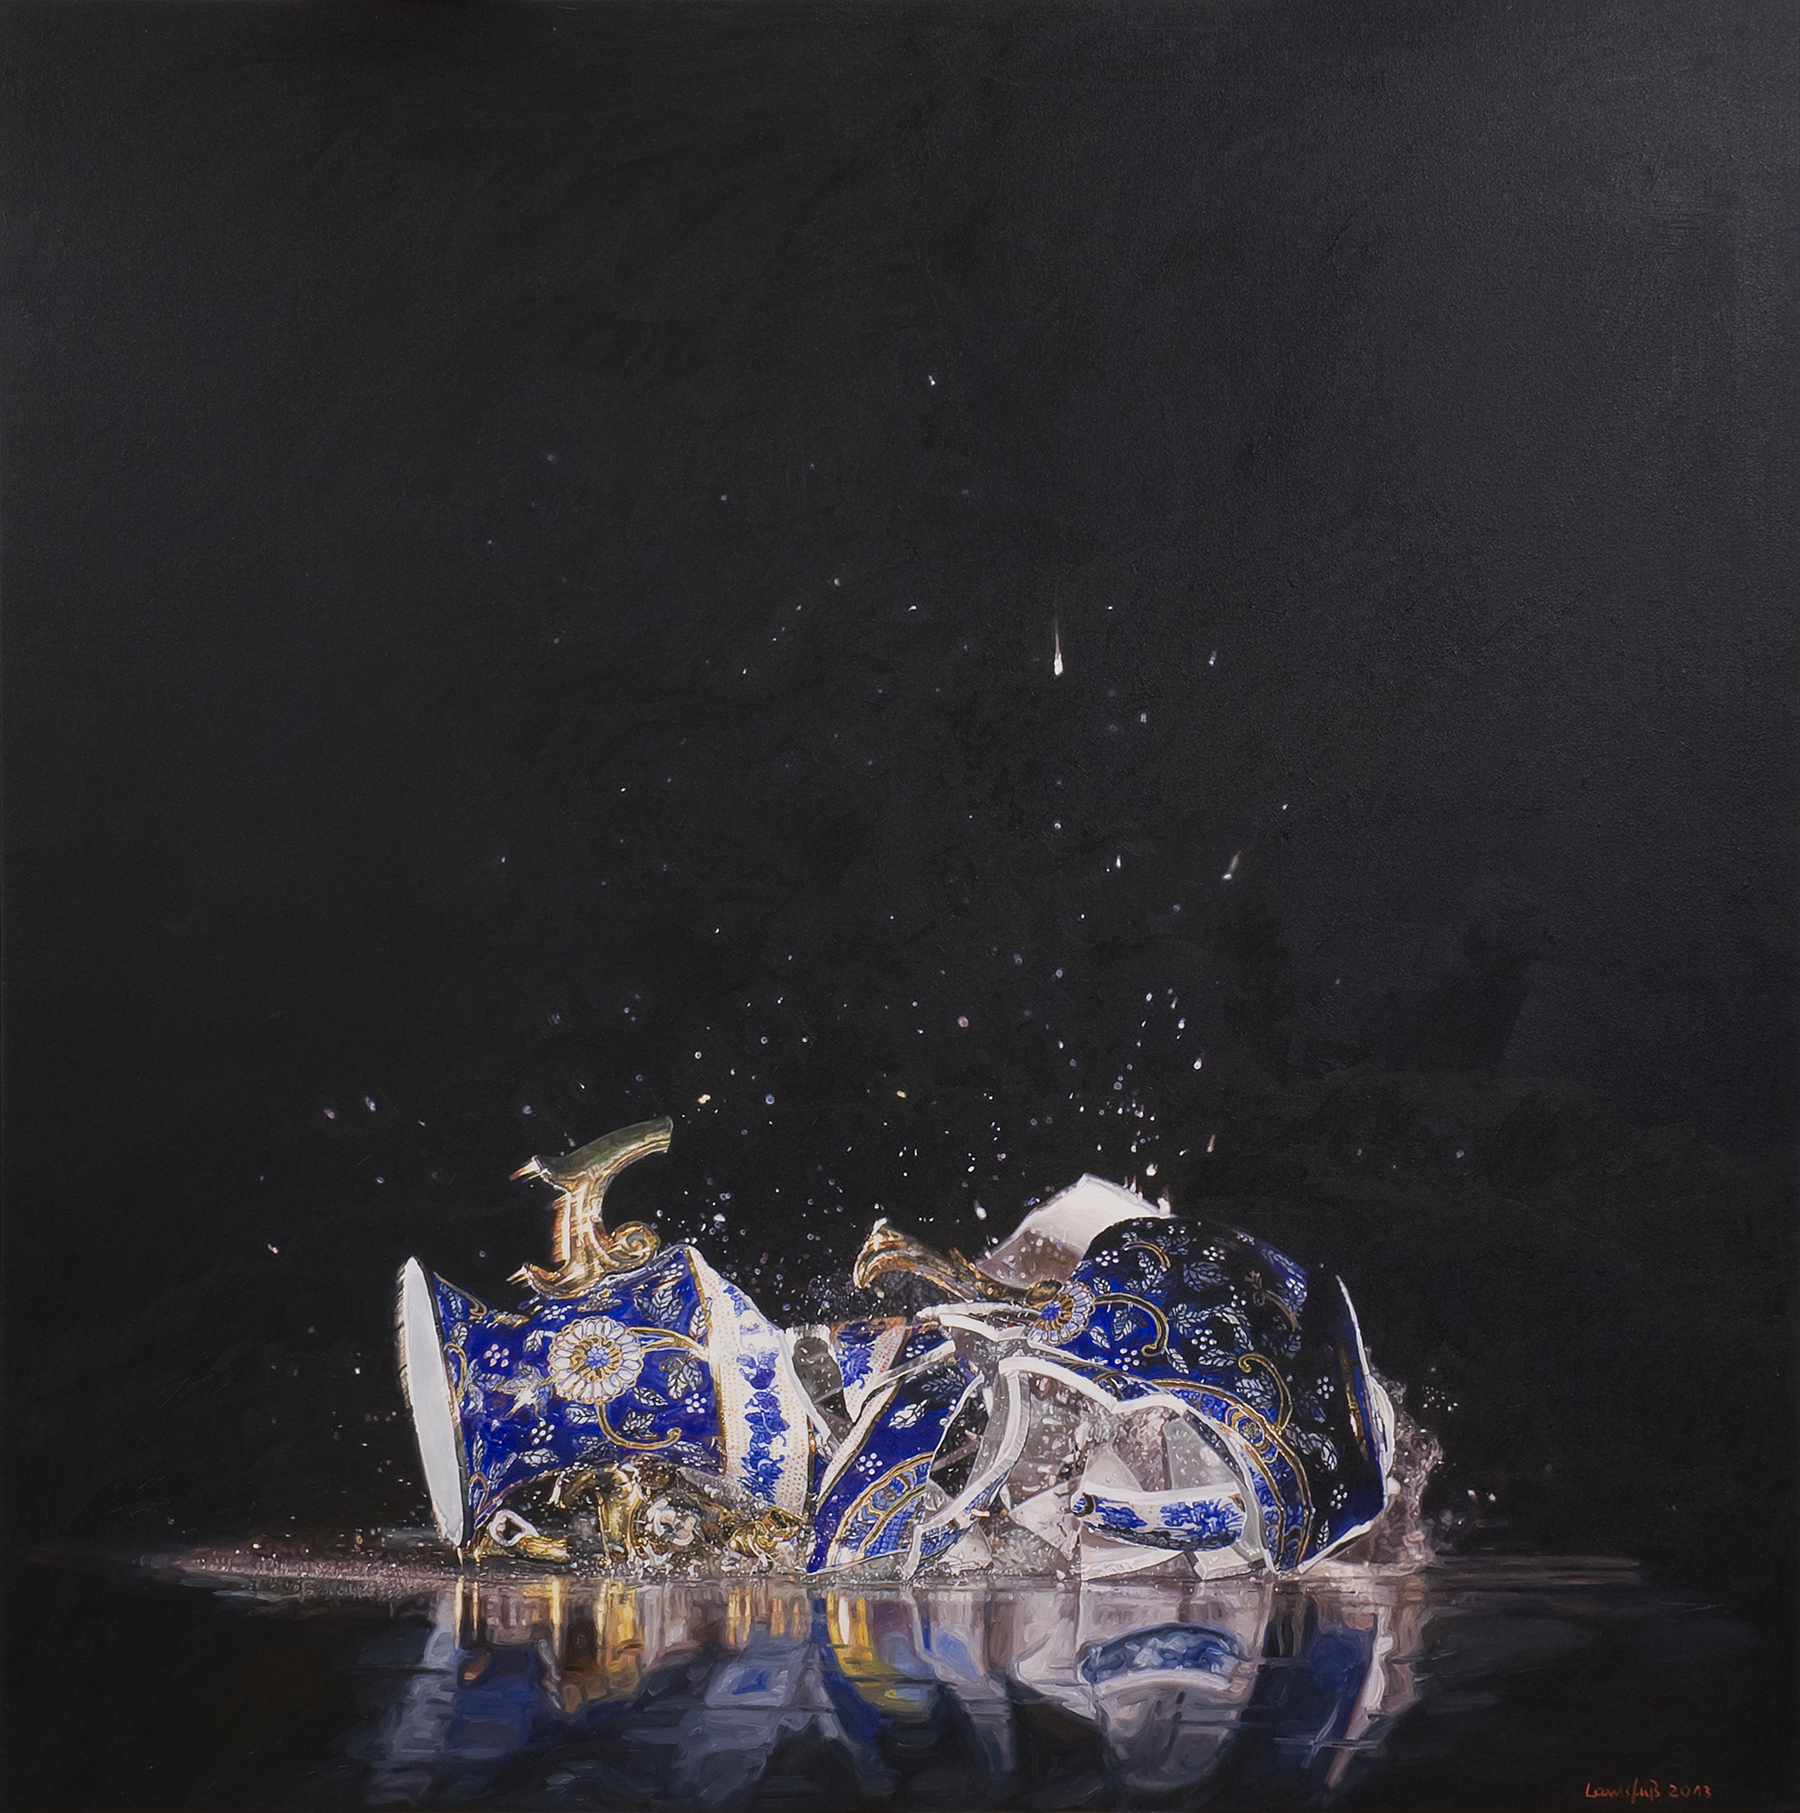 Ulrich Lamsfuss   Ryan McVay, Vase Shattering (gty. im. #200436912001) No. 2  , 2012   oil on canvas   49.21 x 49.21 inches   125 x 125 cm